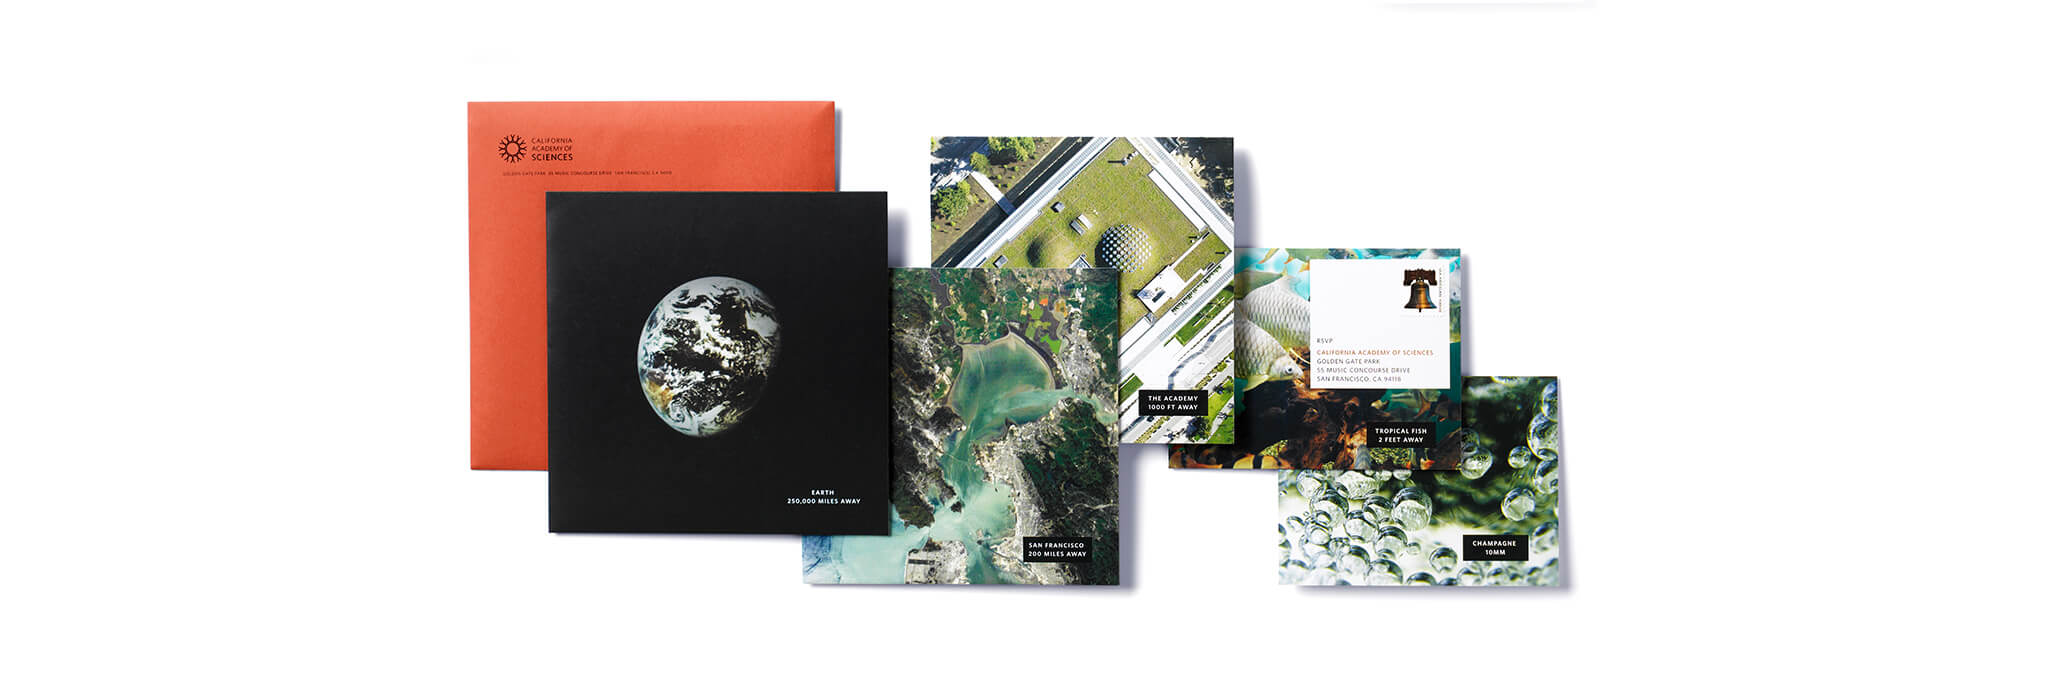 Image cards of earth and Academy of Sciences with orange envelope